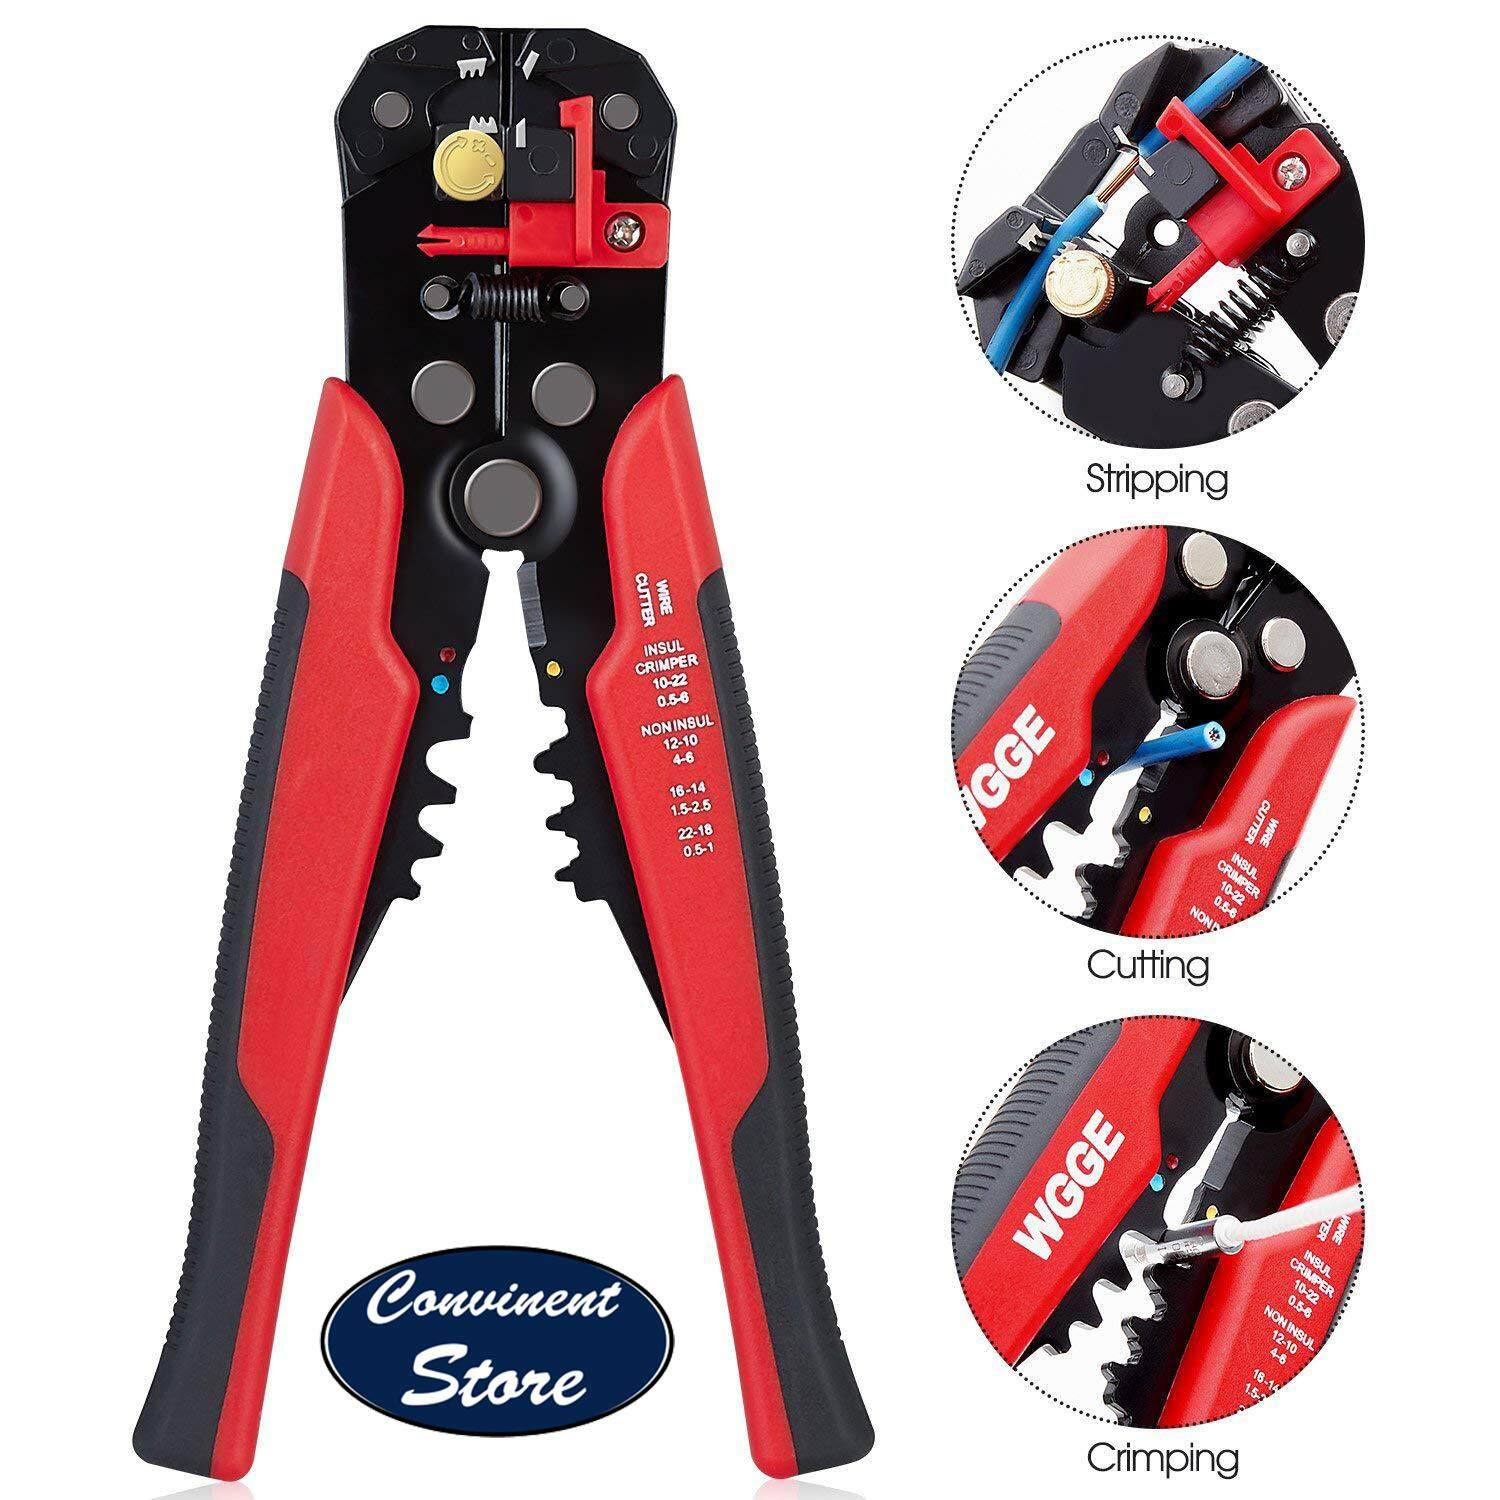 ✅WG-014 Self-Adjusting Insulation Wire Stripper. For stripping wire from AWG 10-24, Automatic Wire Stripping Tool/Cutting Pliers Tool, Automatic Strippers with Cutters & Crimper 8 - By Convinent Store